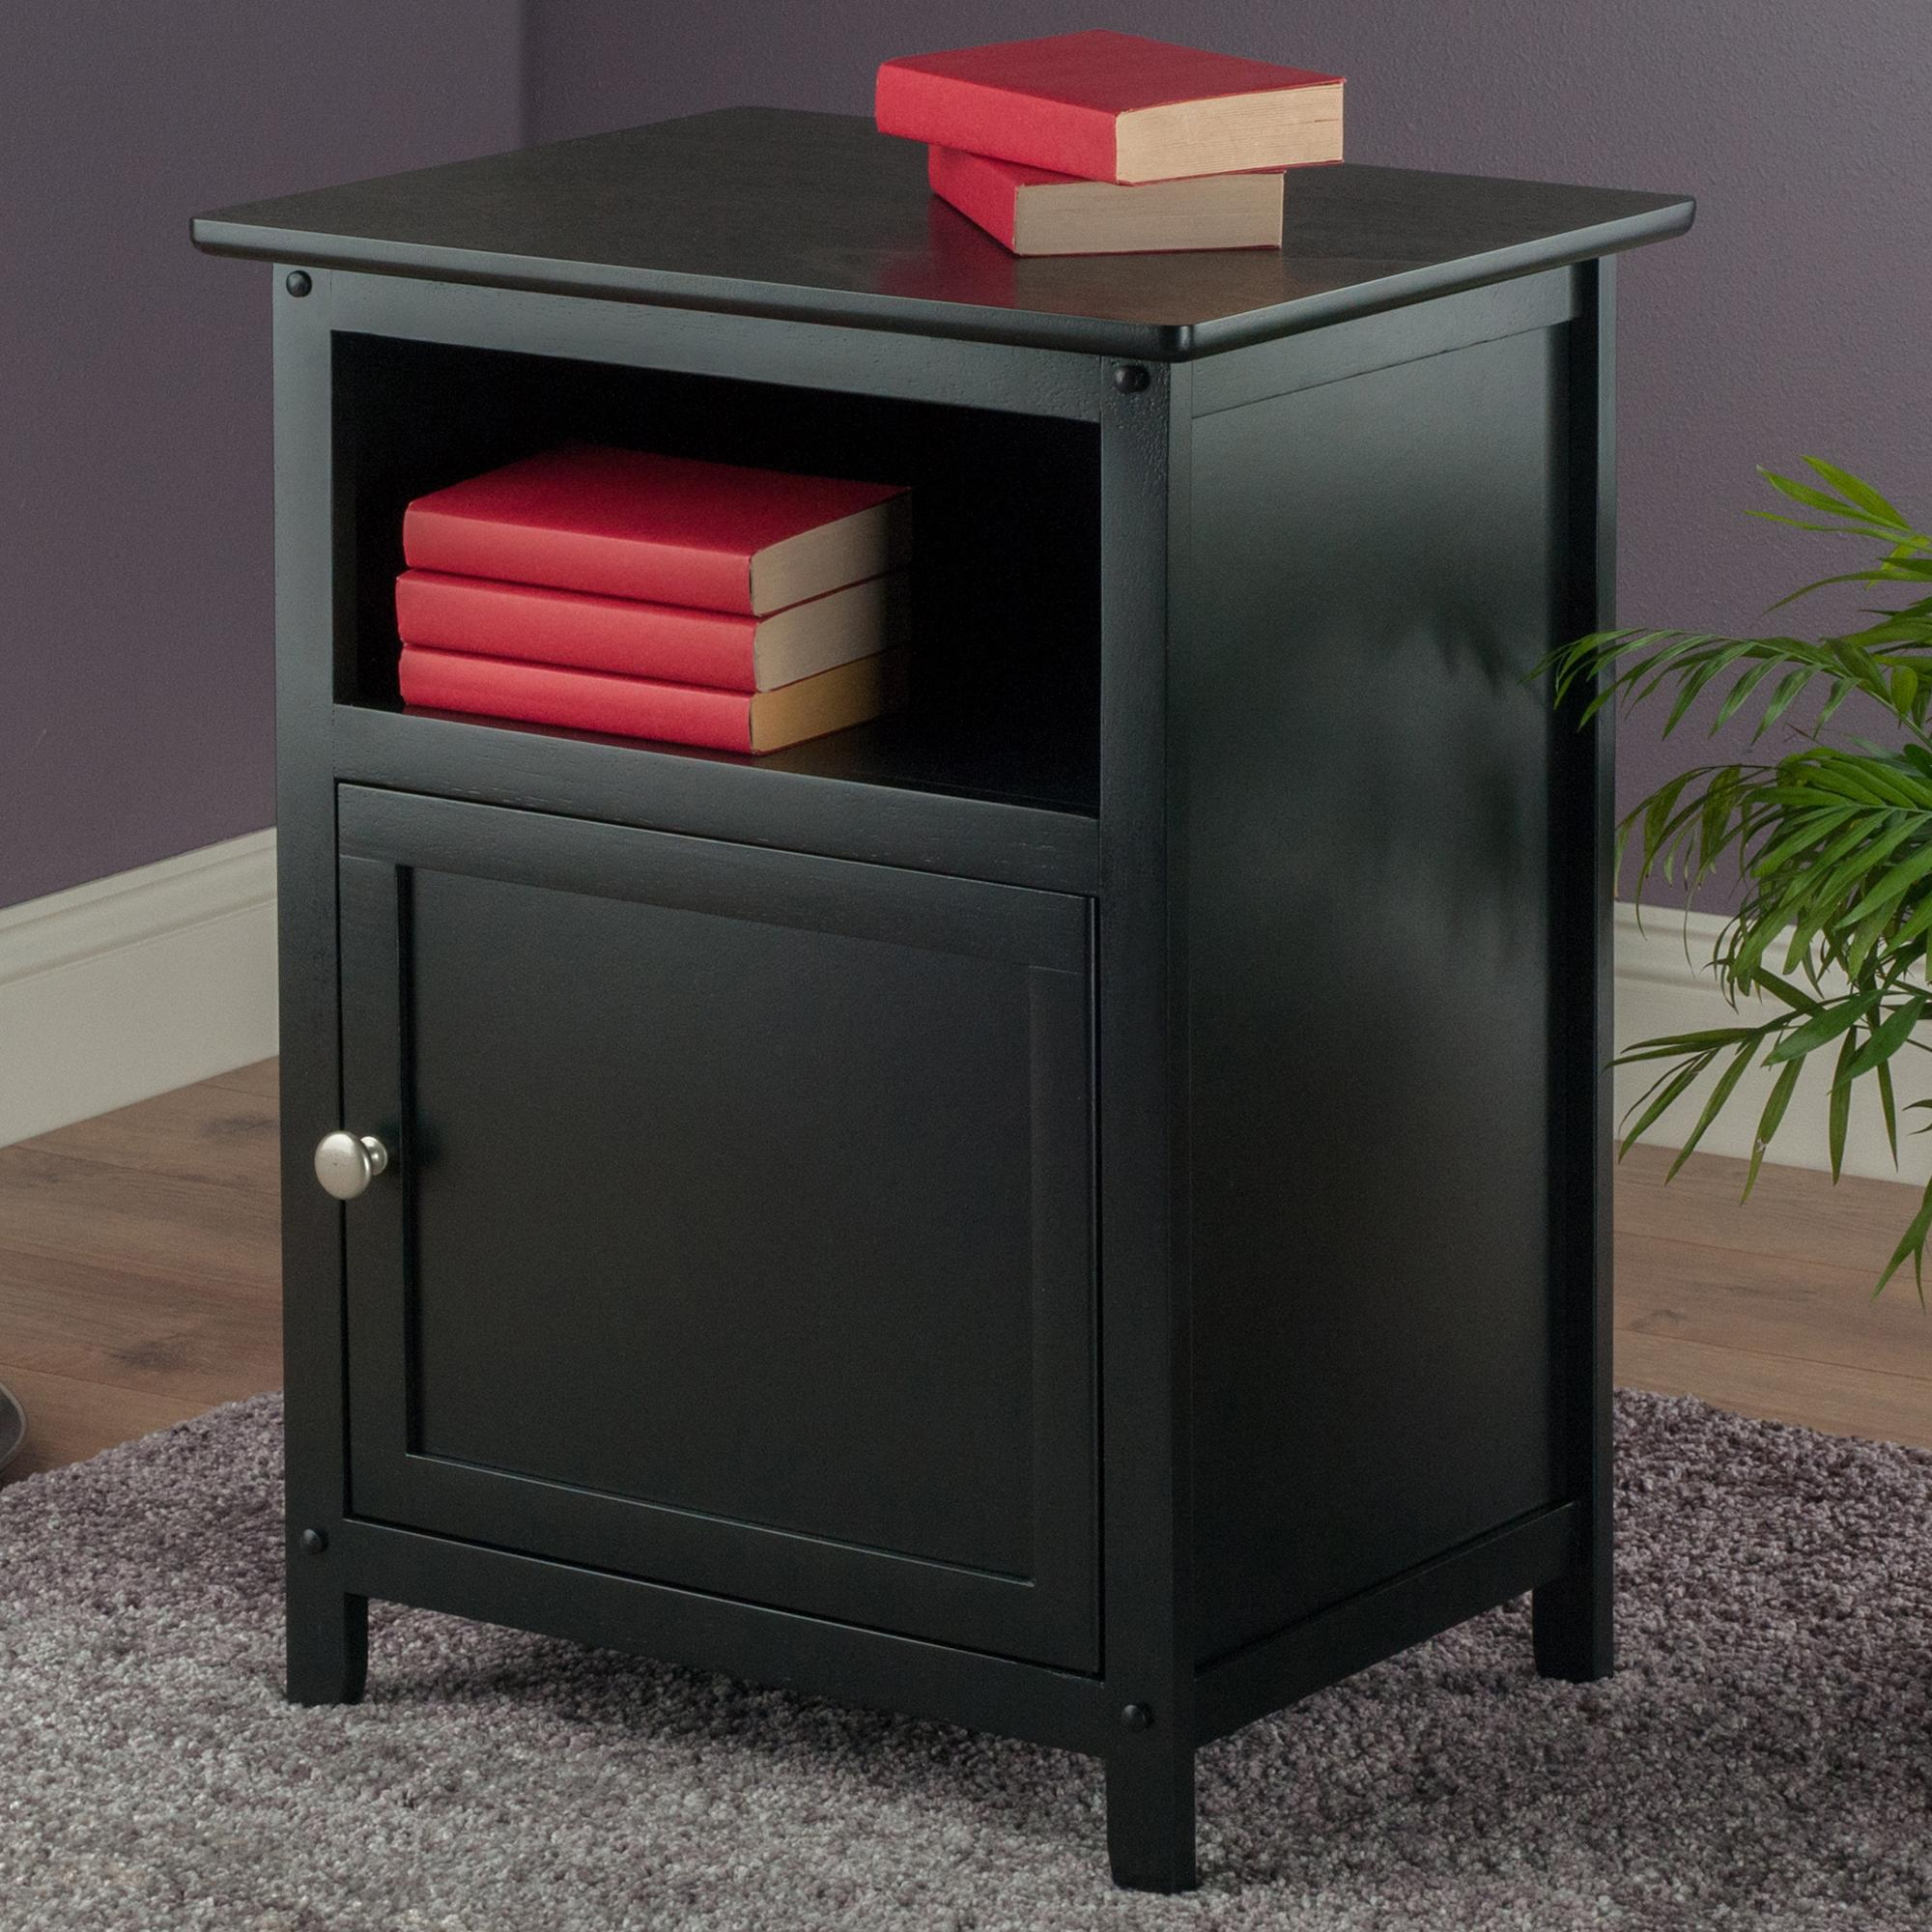 accent night stand black home improvement eugene table henry threshold chair contemporary chairs pastel furniture waterproof covers wood and brass coffee diy metal legs red